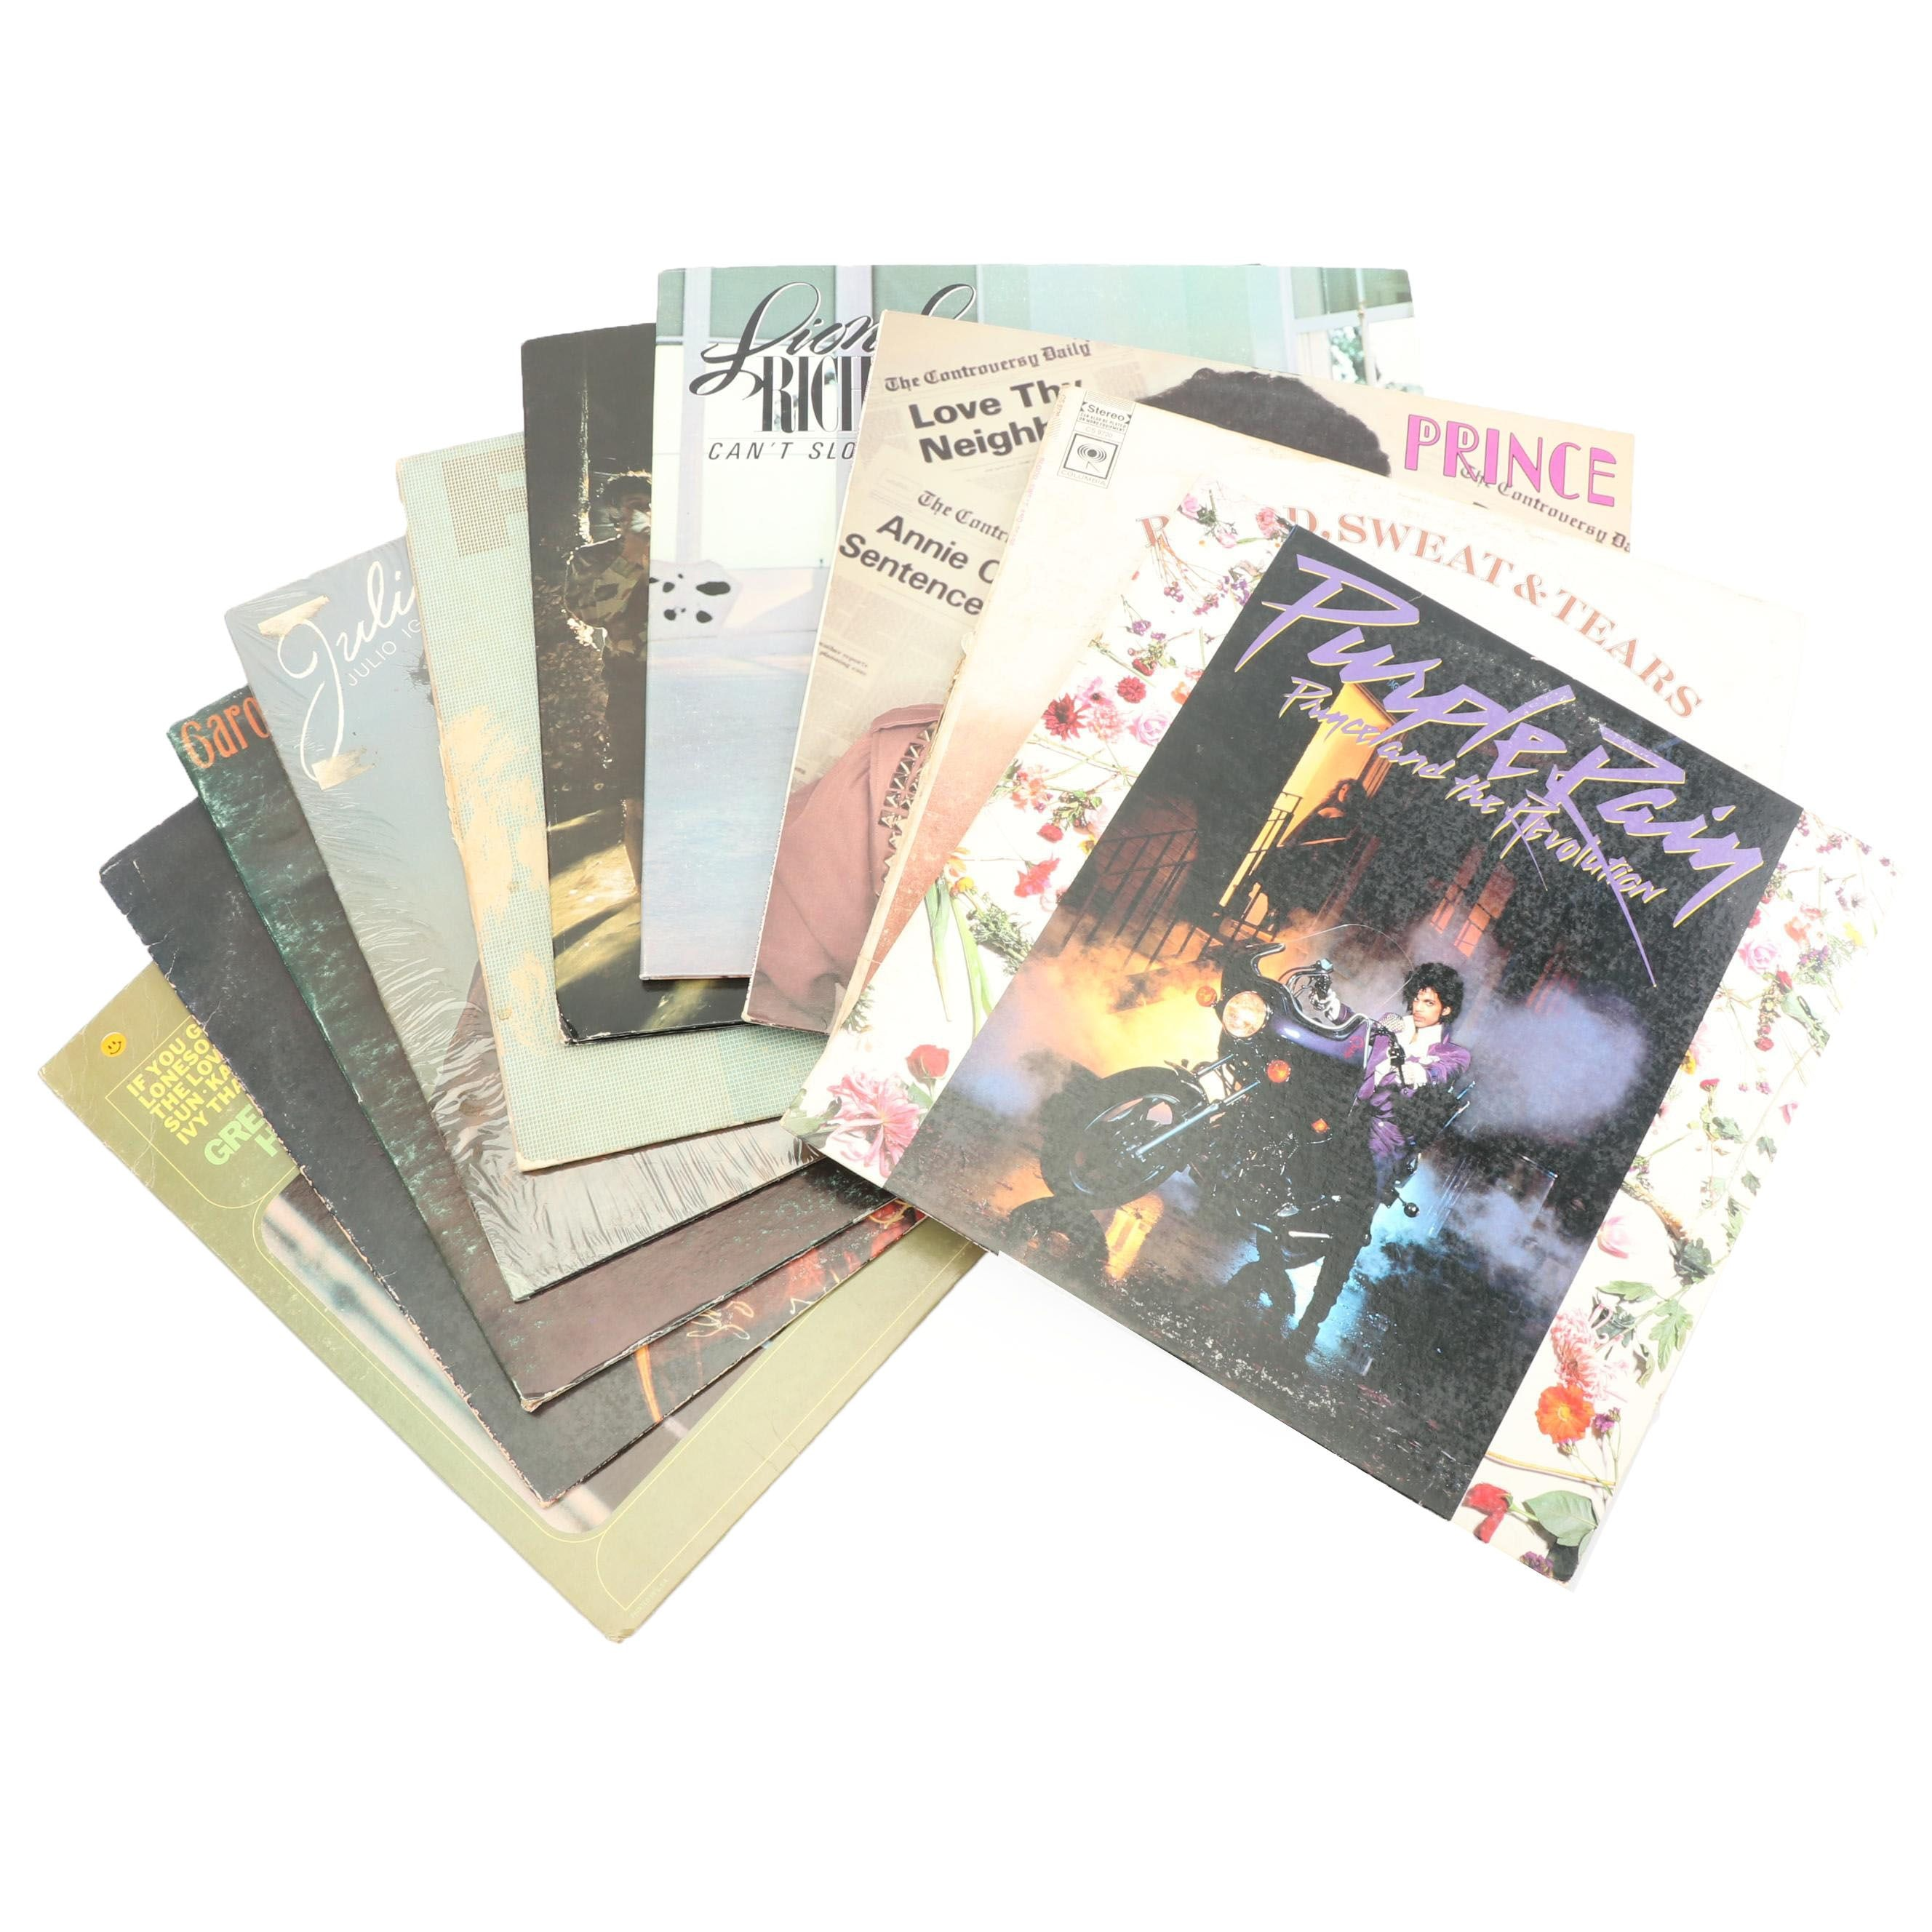 Prince, Lionel Richie, The Guess Who and Other Pop, Rock and Folk Records